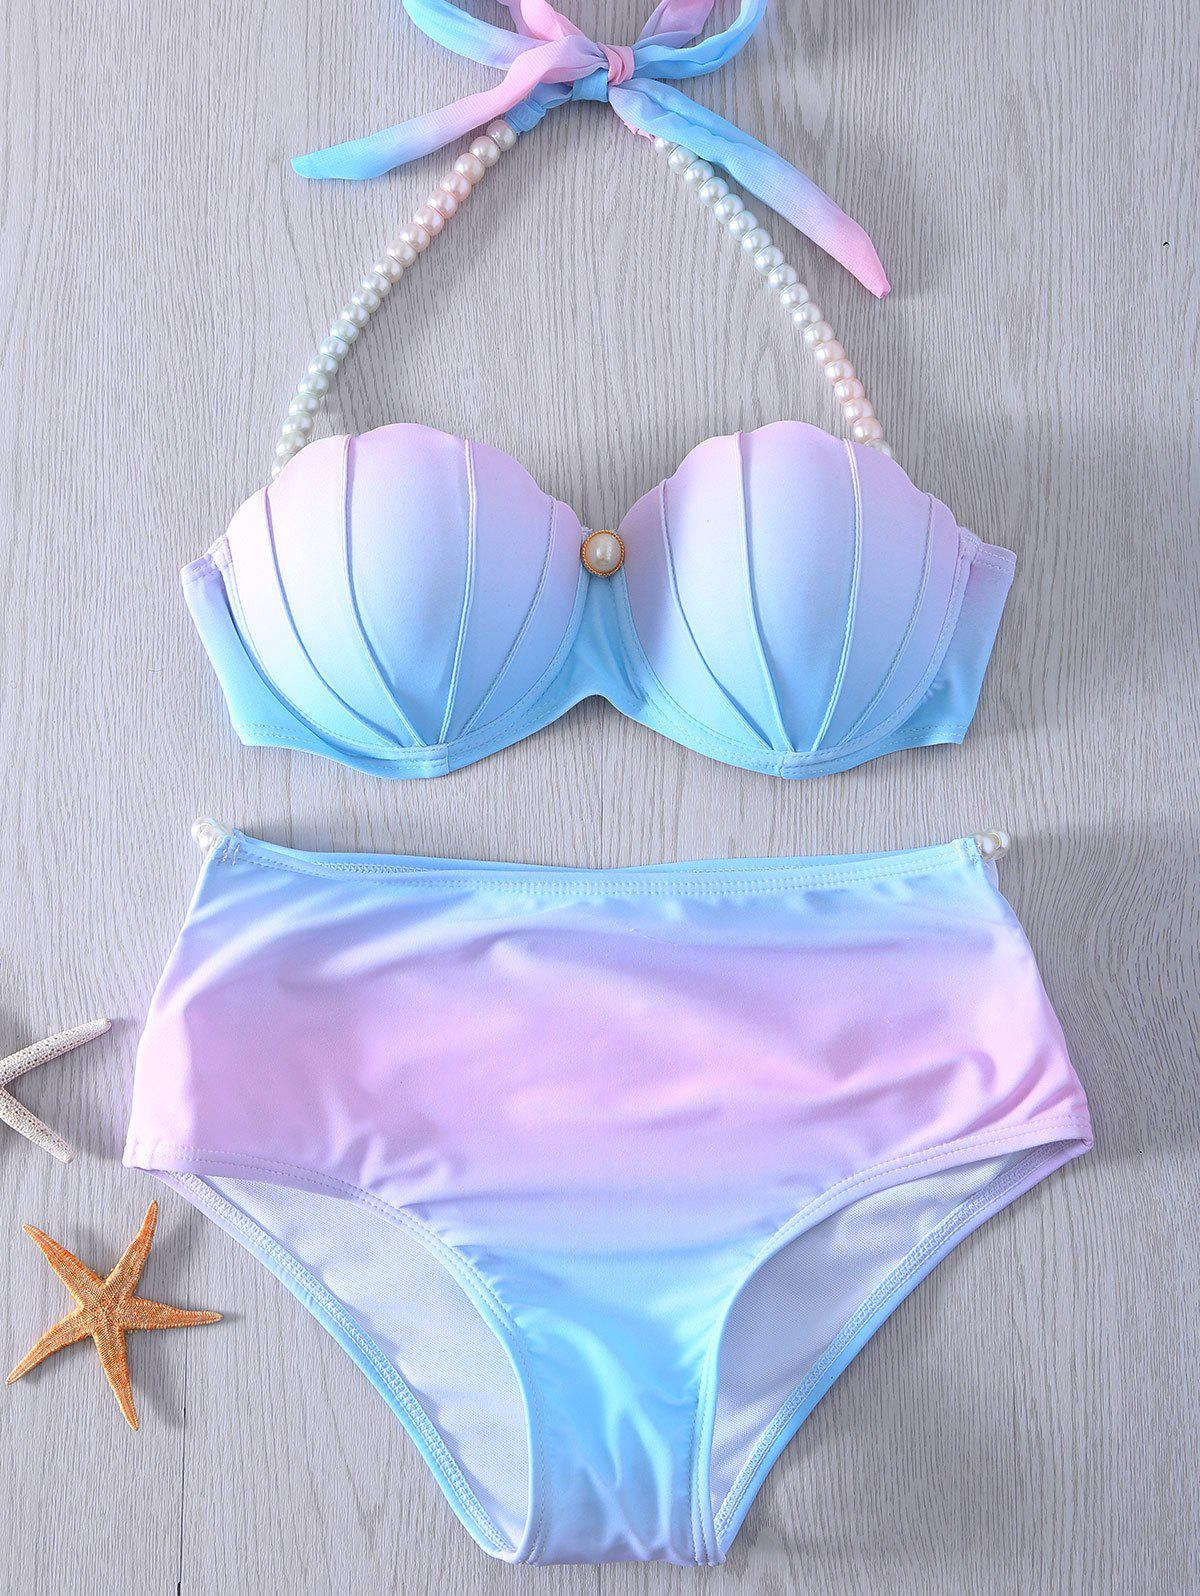 Buy Halter Neck Tie Dye Pearl Embellished Womens Bikini Set BLUE/PINK